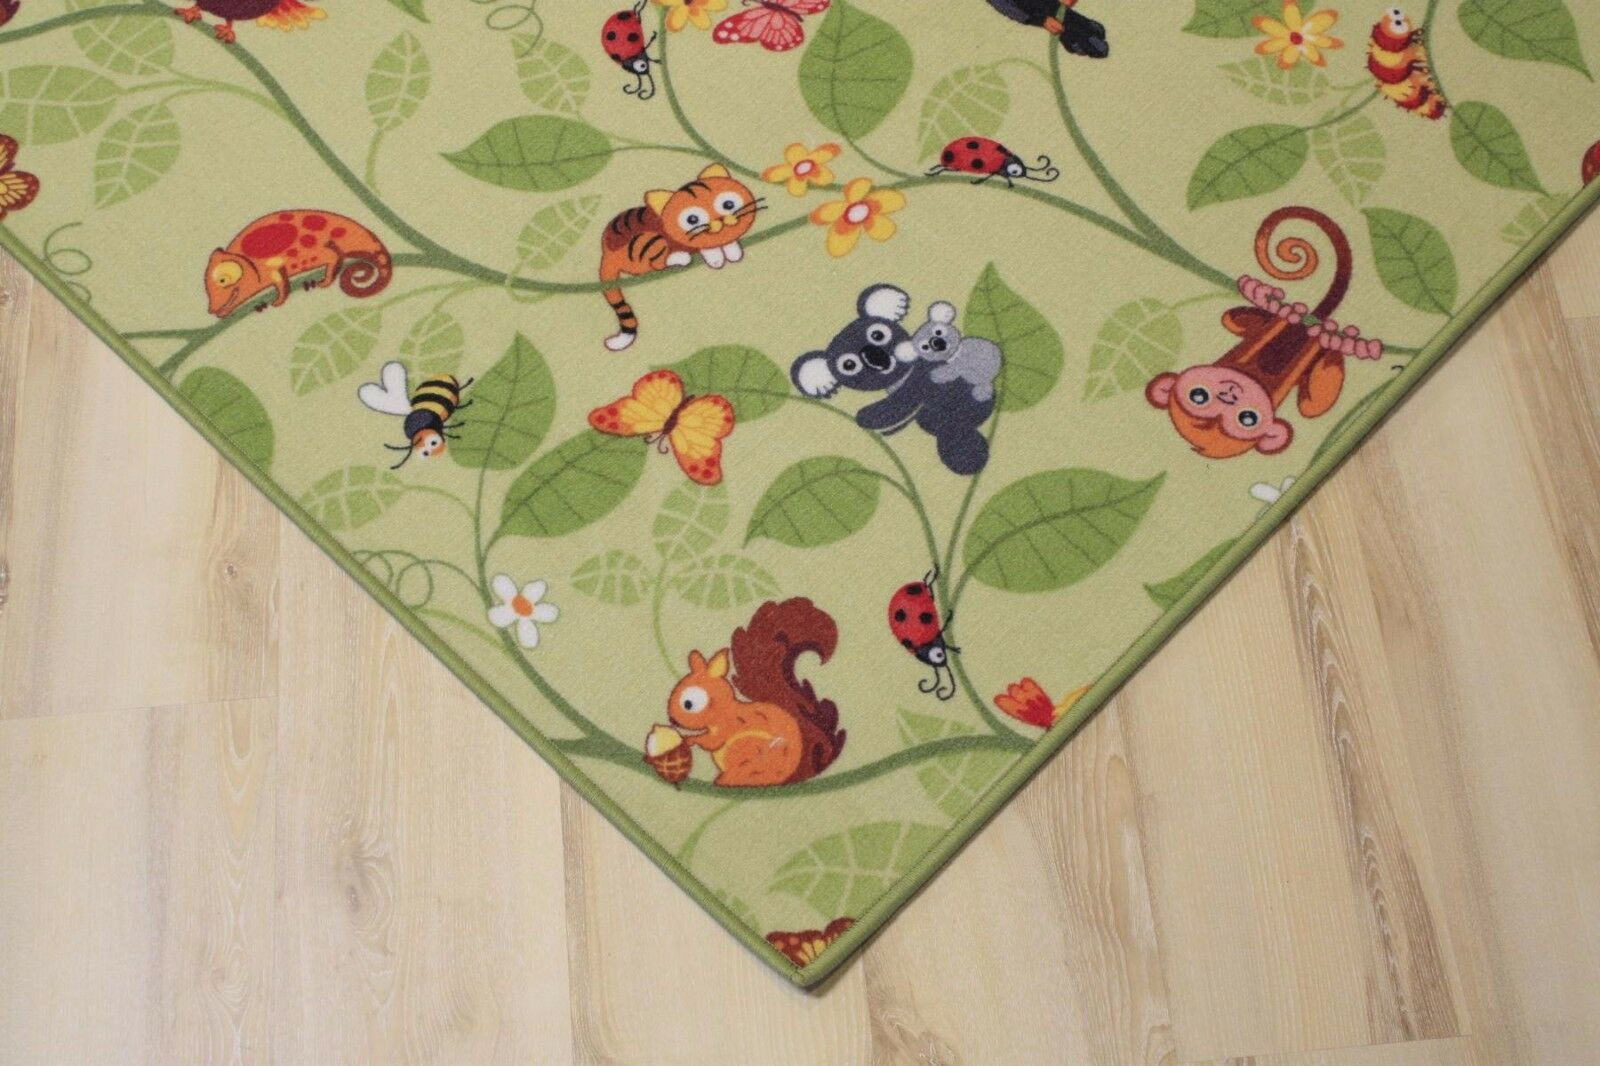 Enfants tapis jeu tapis jungle velour vert 200x320 cm jungle